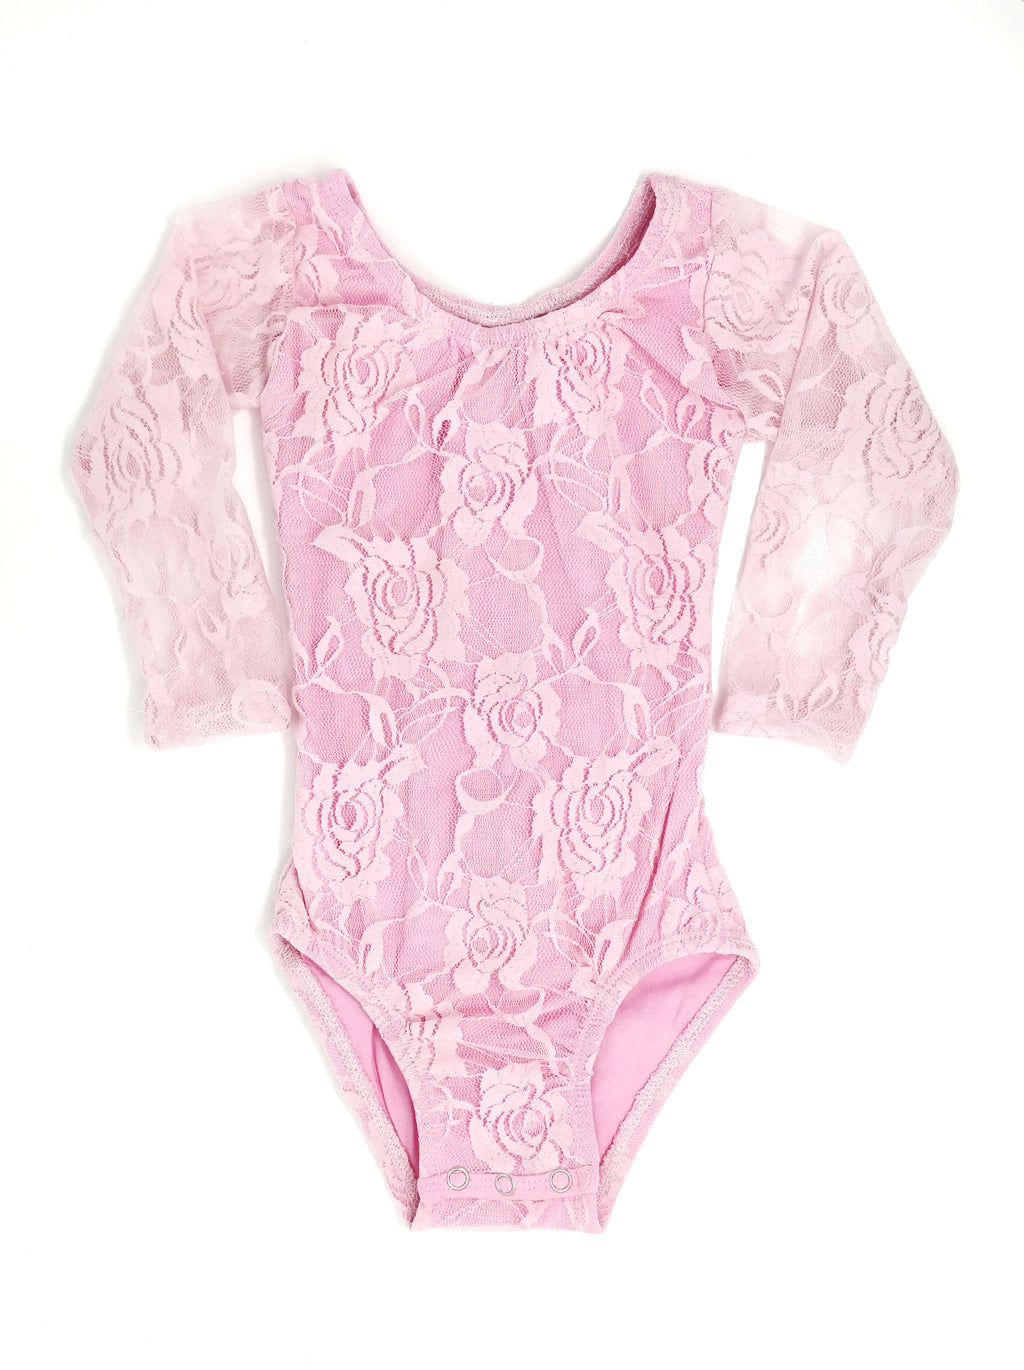 PINK LACE | LONG SLEEVE LEOTARD - SIZE UP